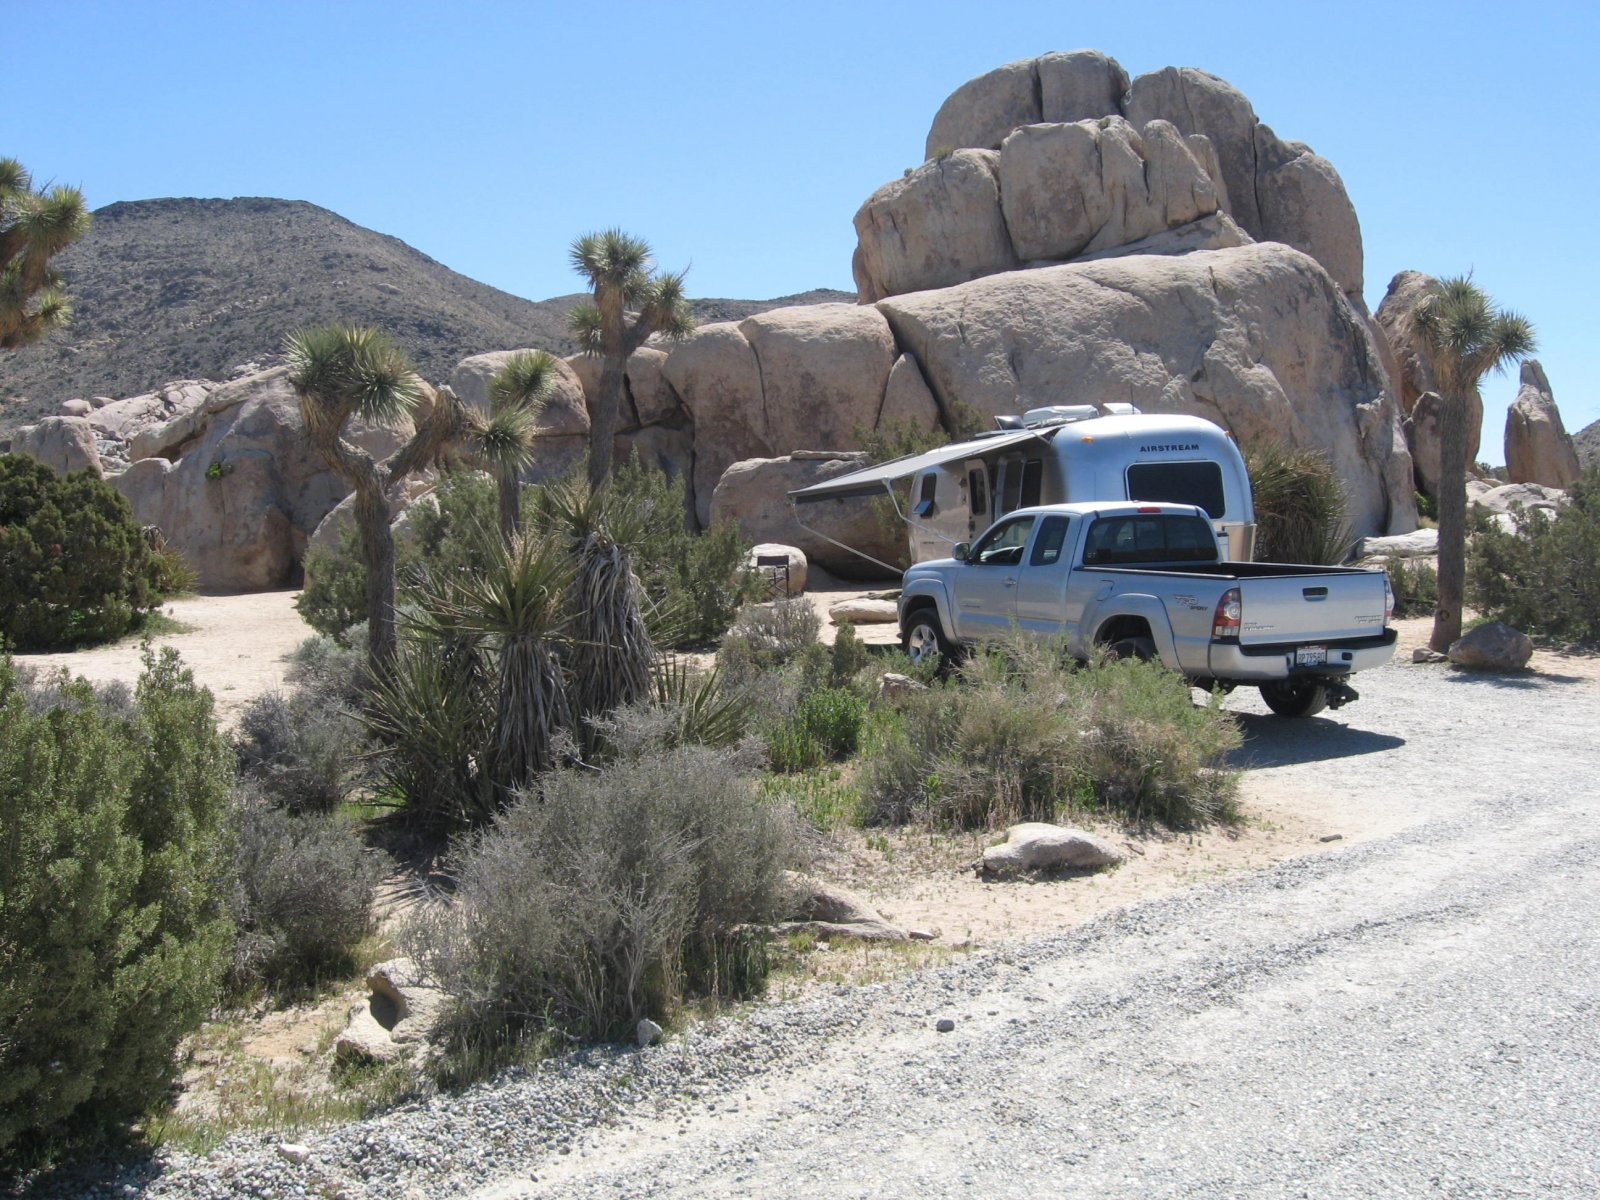 Click image for larger version  Name:Joshua Tree National Park.2.jpg Views:93 Size:444.5 KB ID:101969